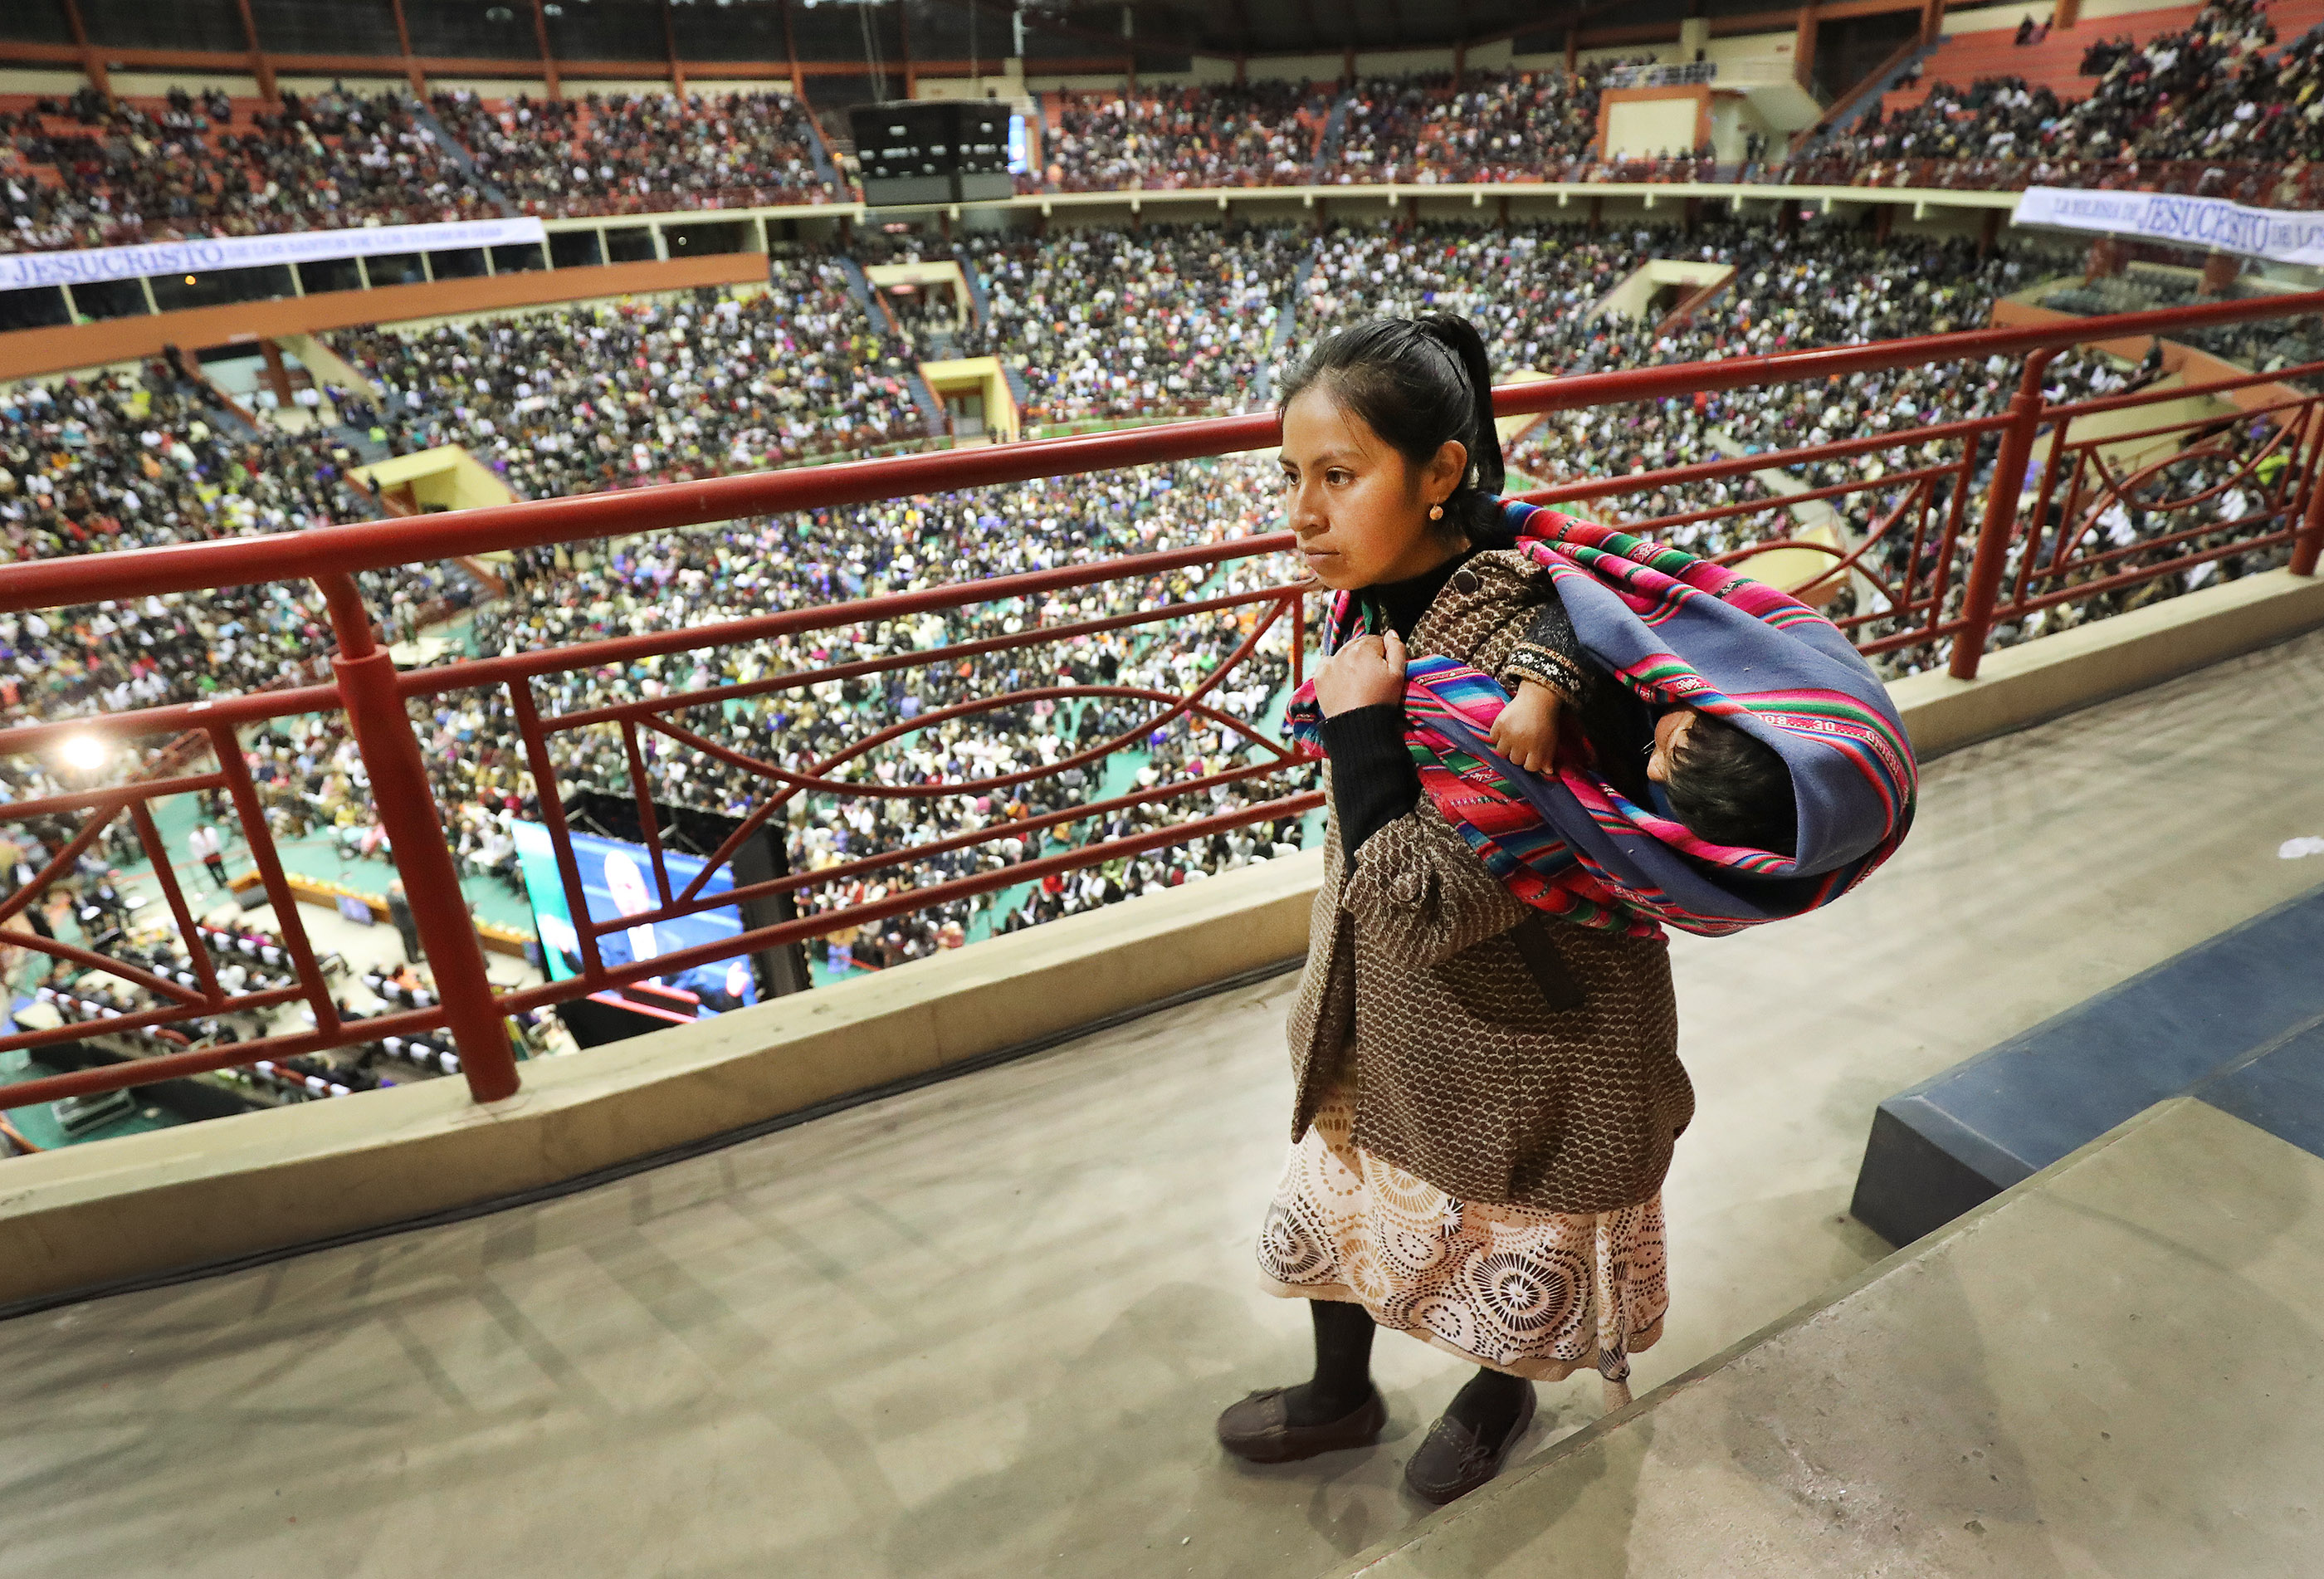 A woman carries a child as President Russell M. Nelson of The Church of Jesus Christ of Latter-day Saints speaks in La Paz, Bolivia on Oct. 21, 2018.